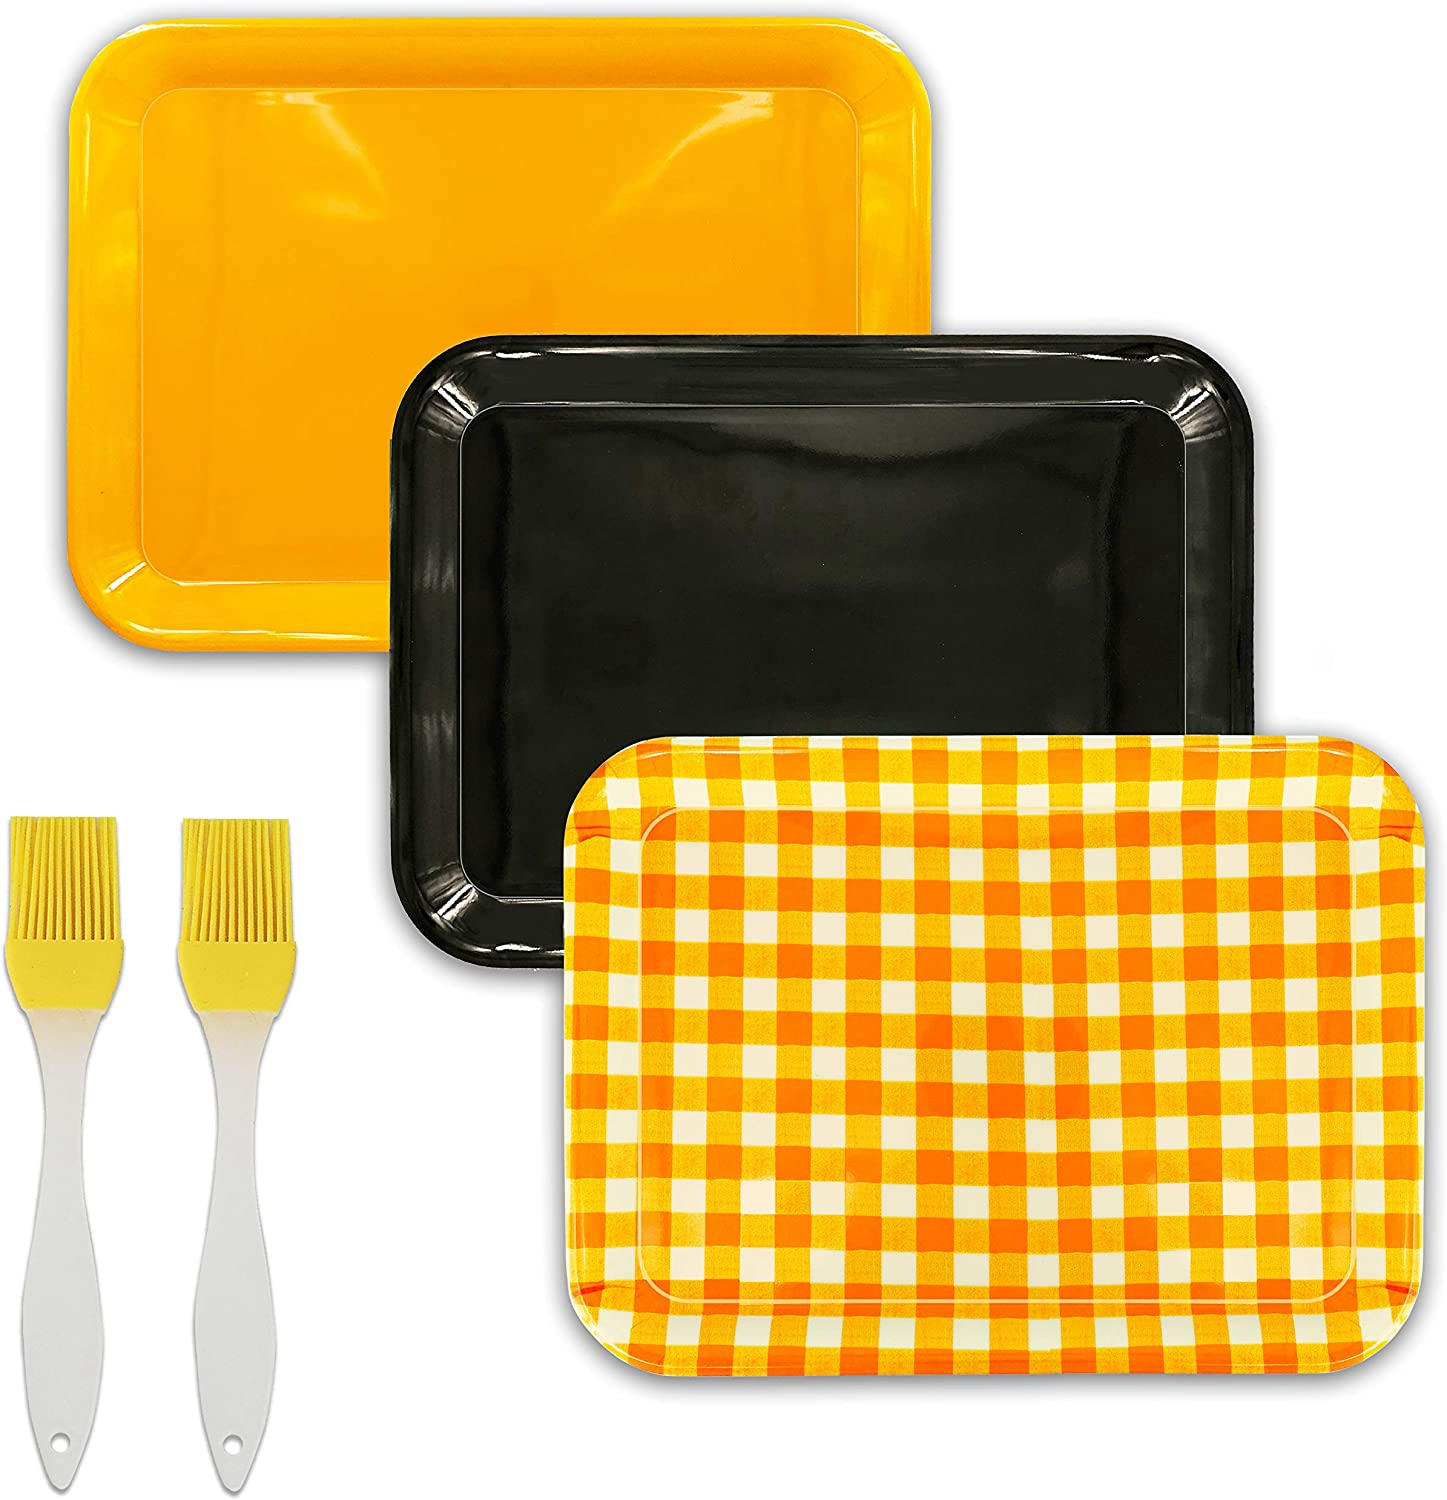 ZYH Prepare Food Tray and Grill Tray (3 sets)-17